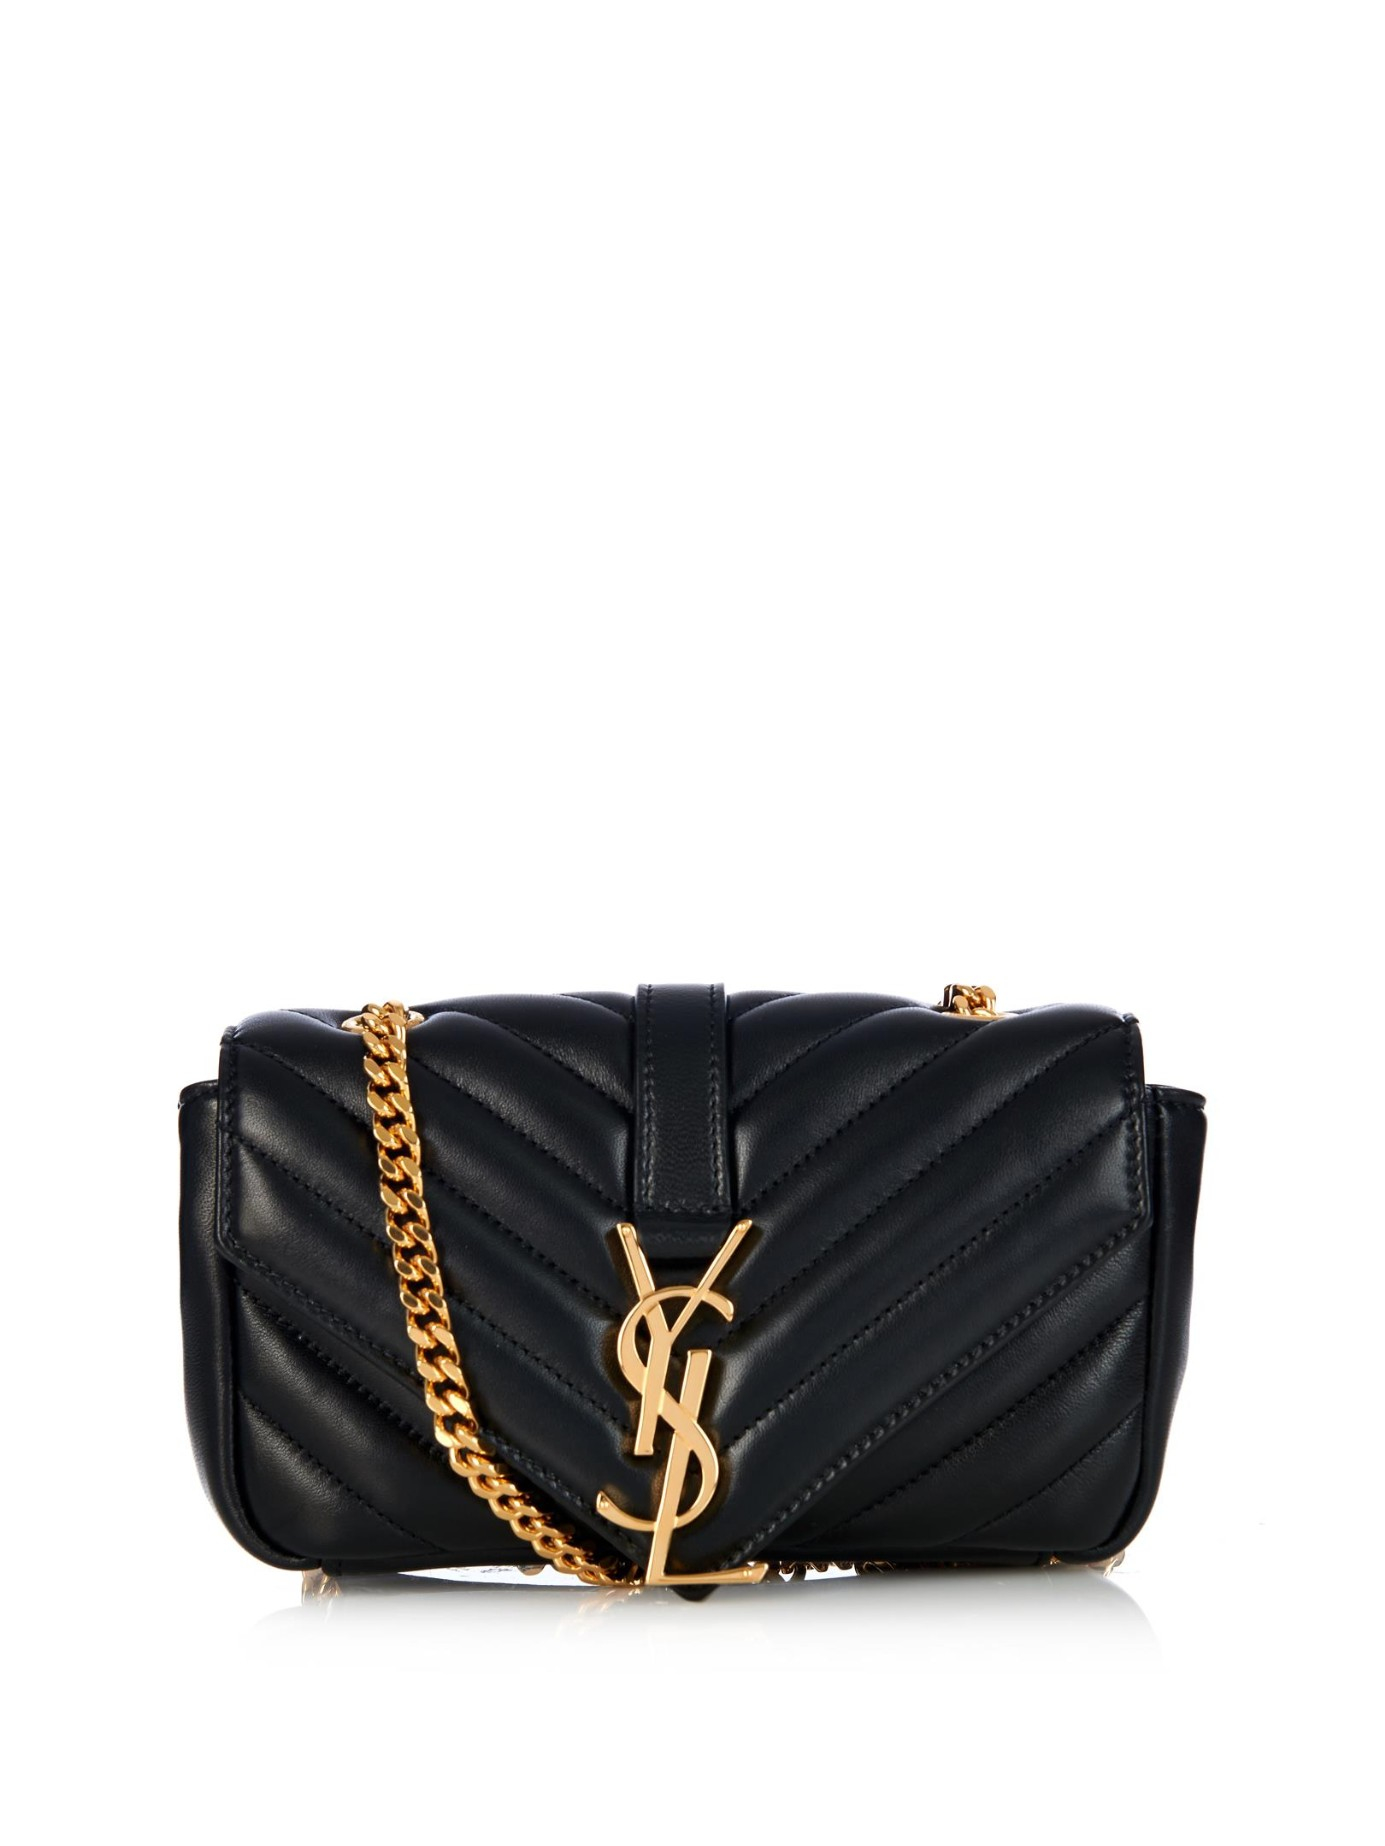 saint laurent monogramme baby quilted leather cross body bag in black lyst. Black Bedroom Furniture Sets. Home Design Ideas